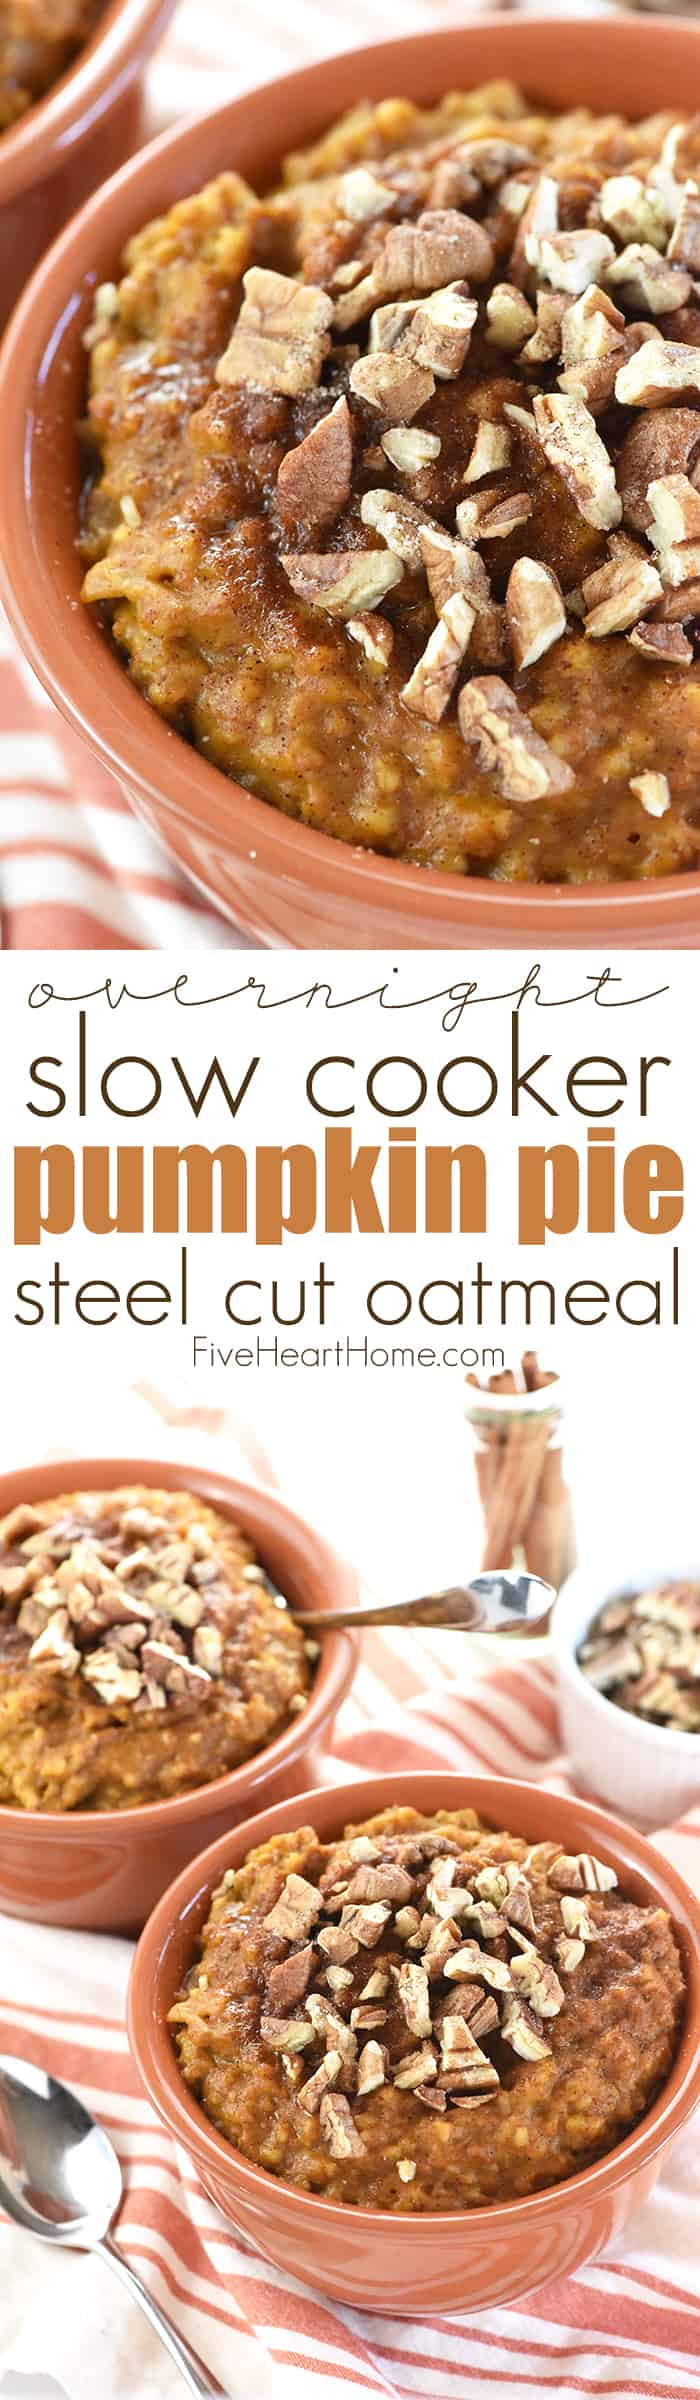 Overnight Slow Cooker Pumpkin Pie Steel Cut Oatmeal Collage with Text Overlay